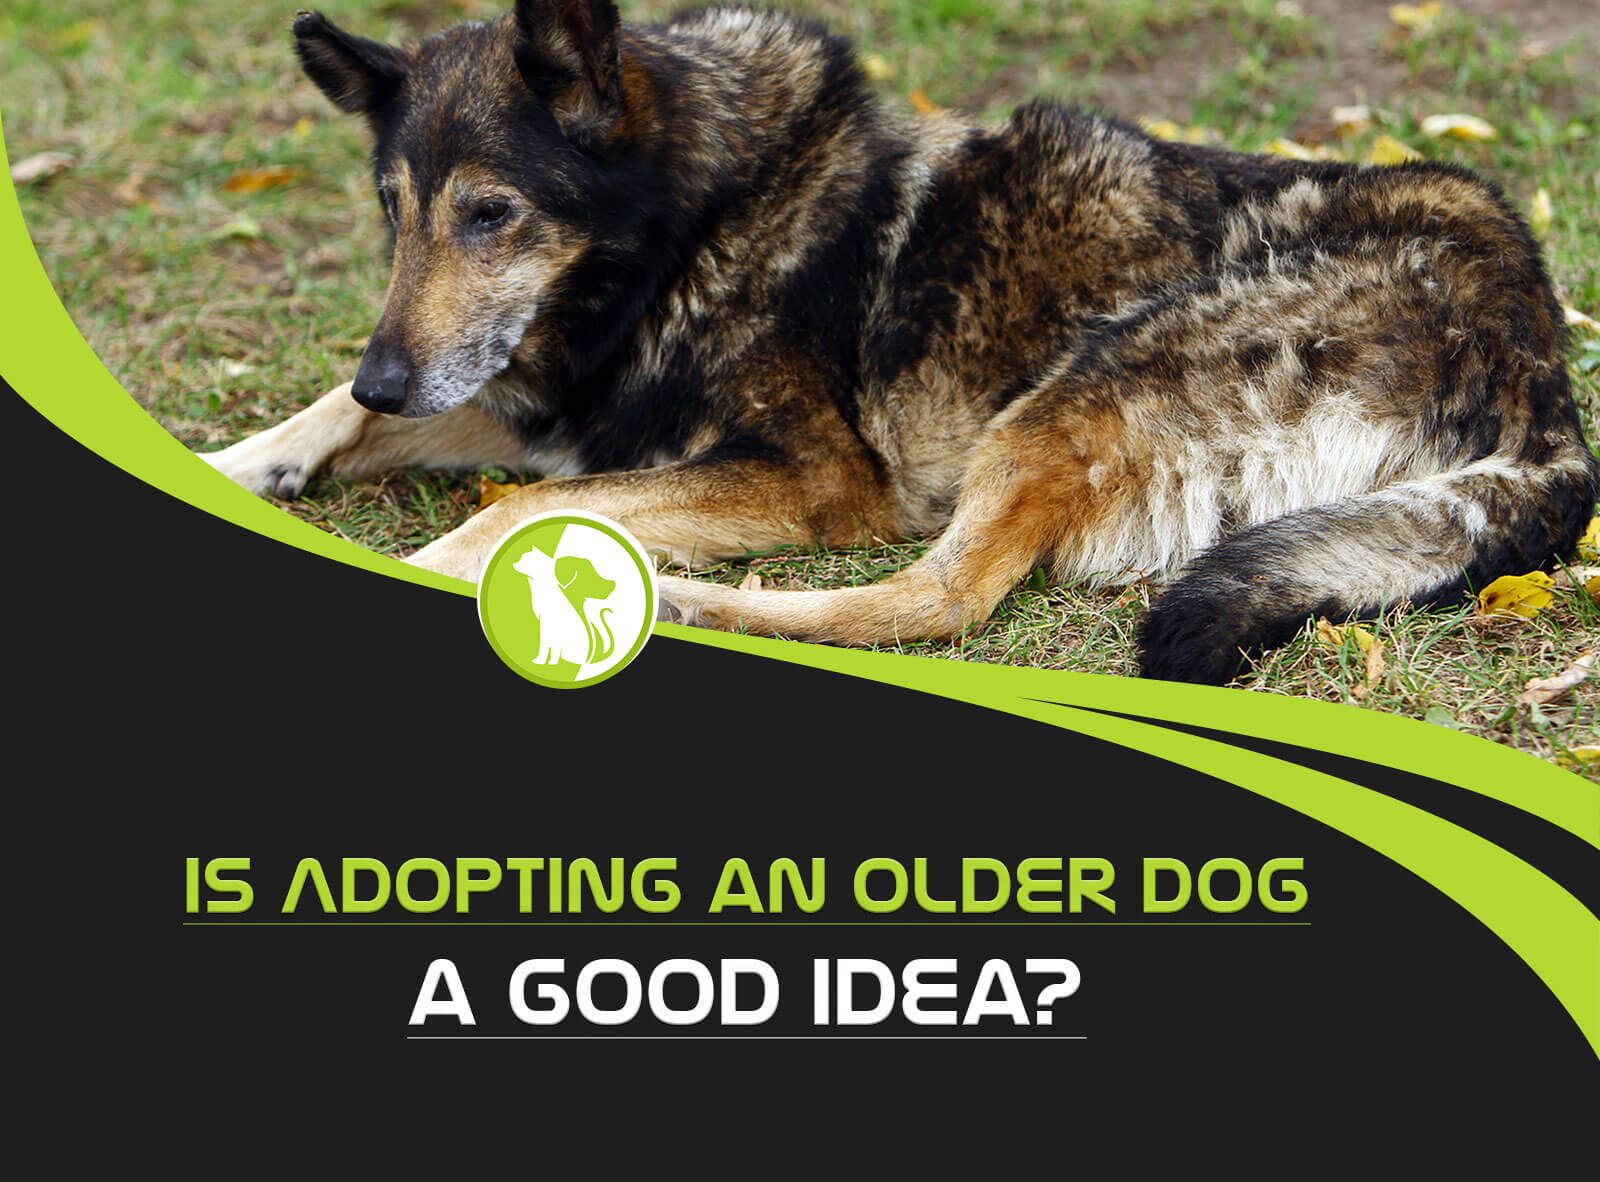 Is Adopting an Older Dog a Good Idea?